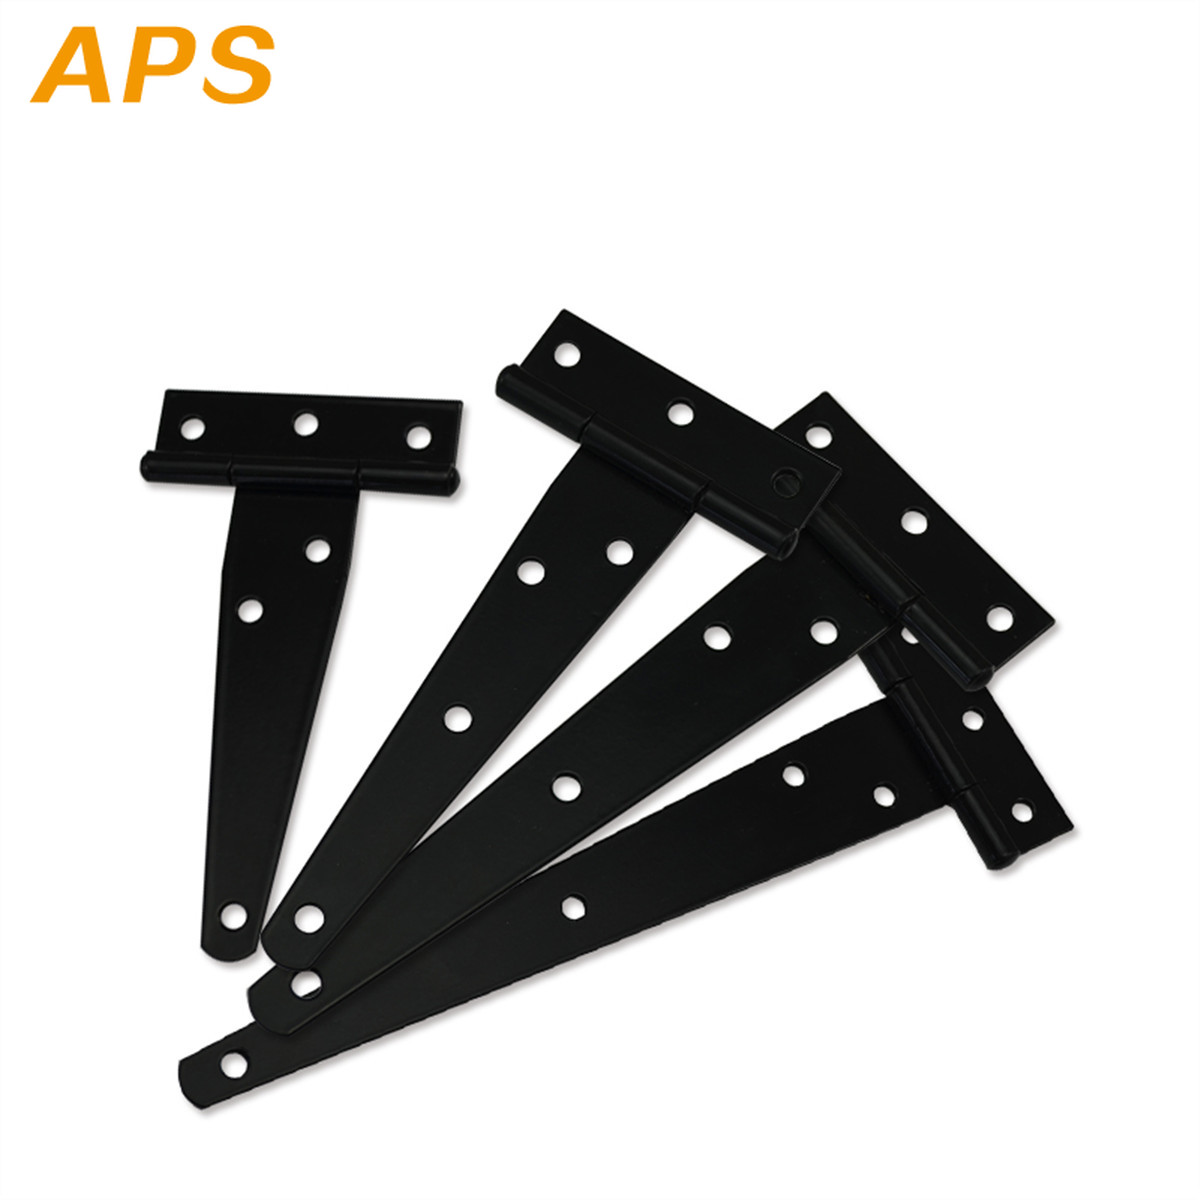 1pcs 4/5/6/8inch Iron Tee Hinge Black T Hinges Cabinet Hinge Garden Shed  Wooden Door Gate For Light Gates Doors Furniture